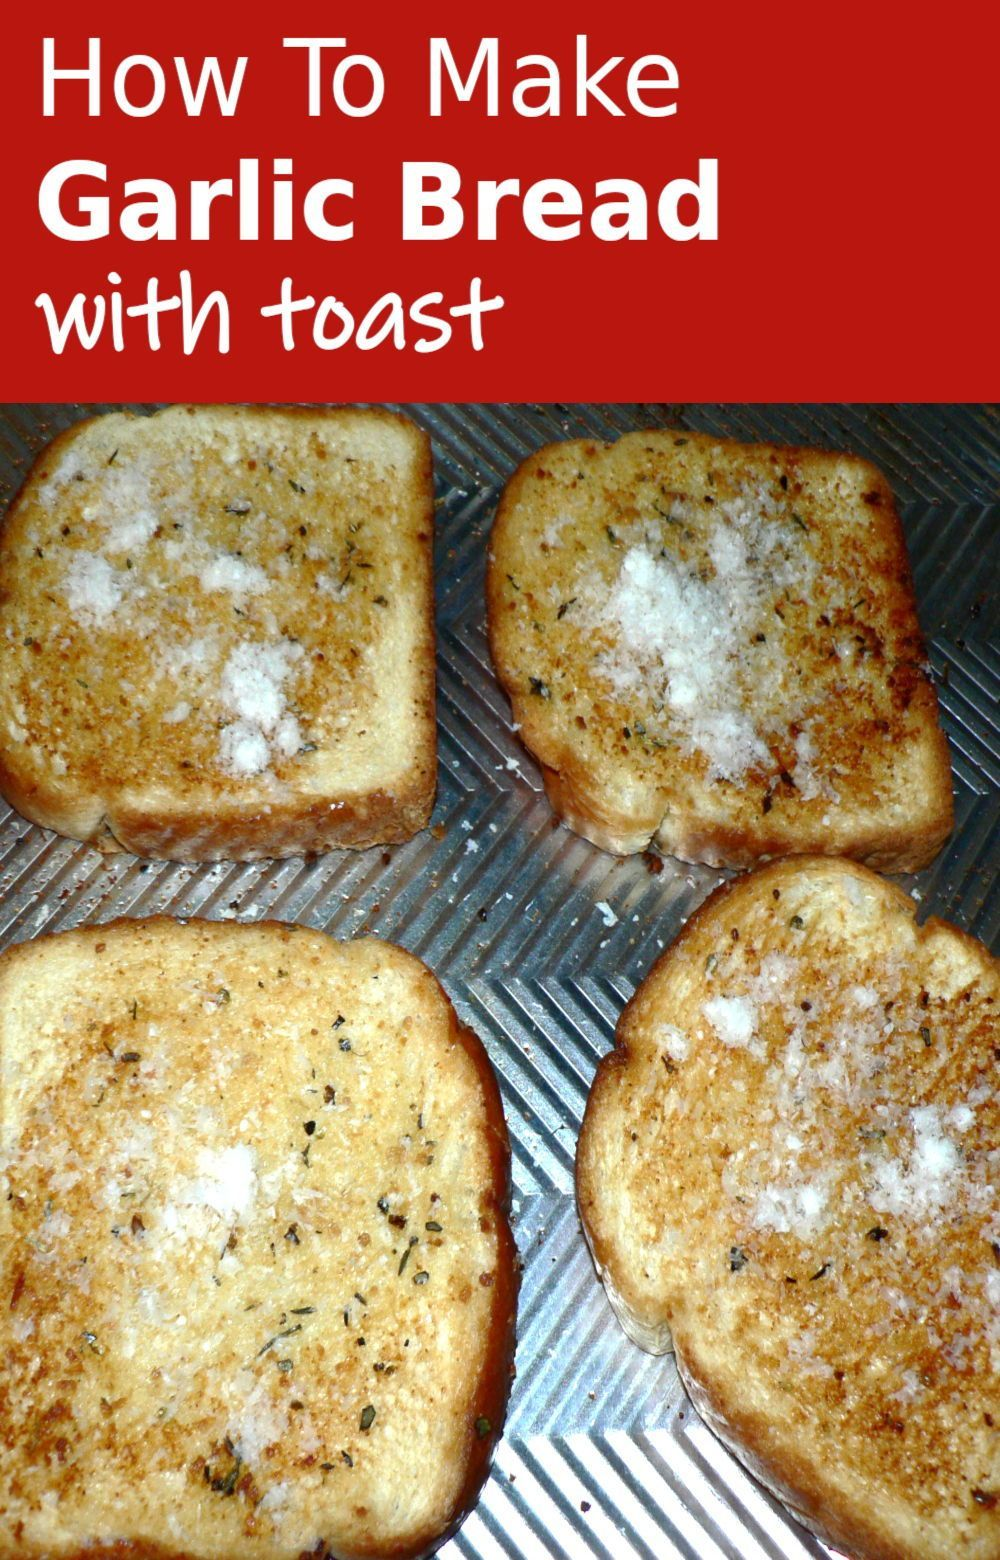 How To Make Garlic Bread With Toast In 2020 Make Garlic Bread Garlic Bread Garlic Bread Easy